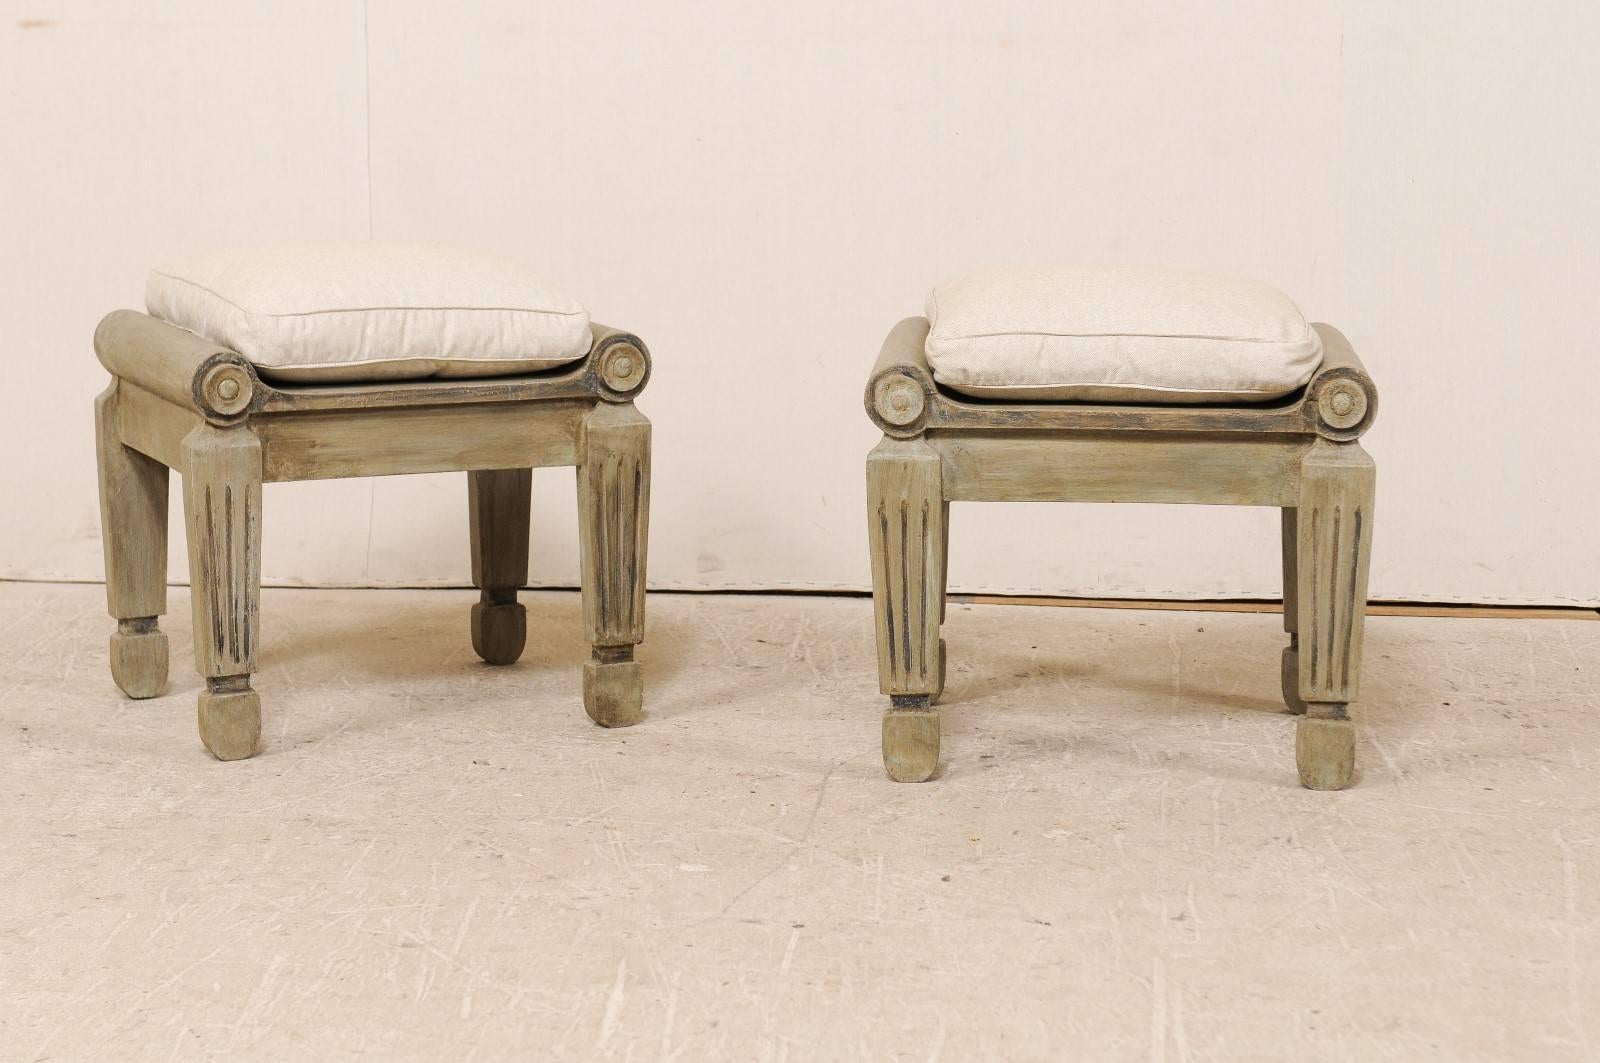 Pair of Carved and Painted Brazilian Wood Stools with Fluted and Tapered Legs 3 : carved wood stool - islam-shia.org